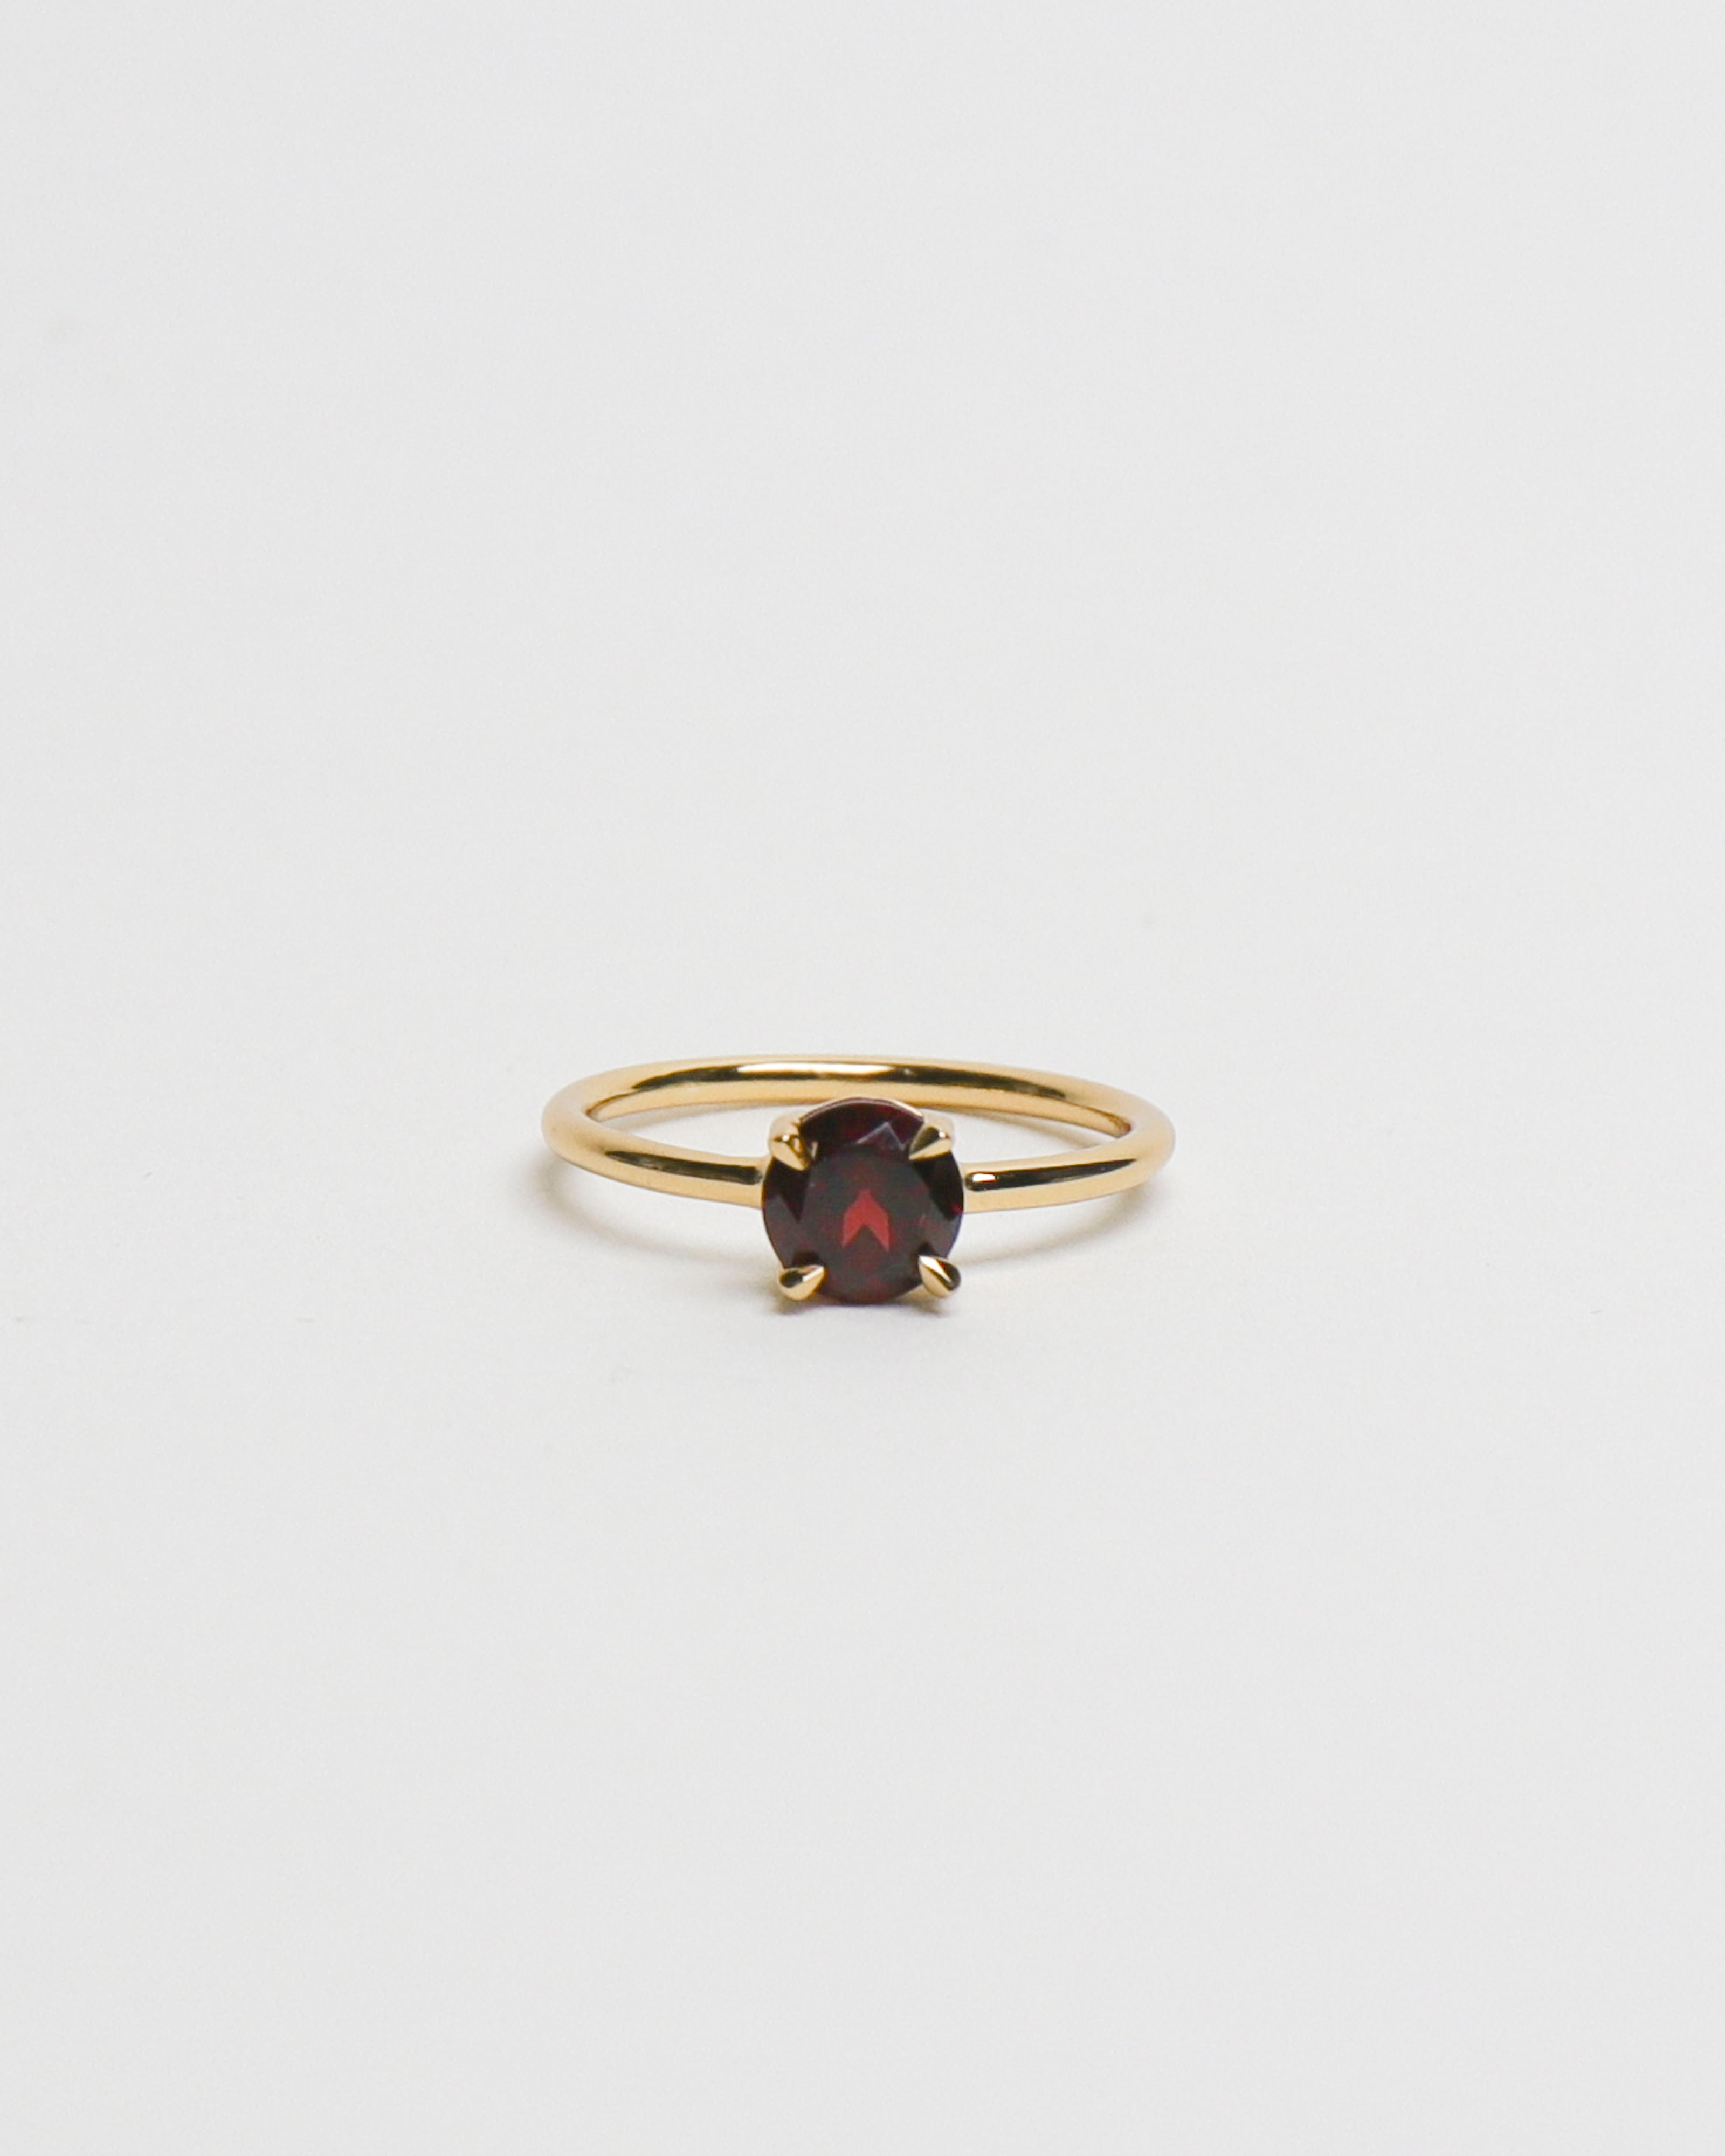 6mm Round Garnet Ring [US6.5]